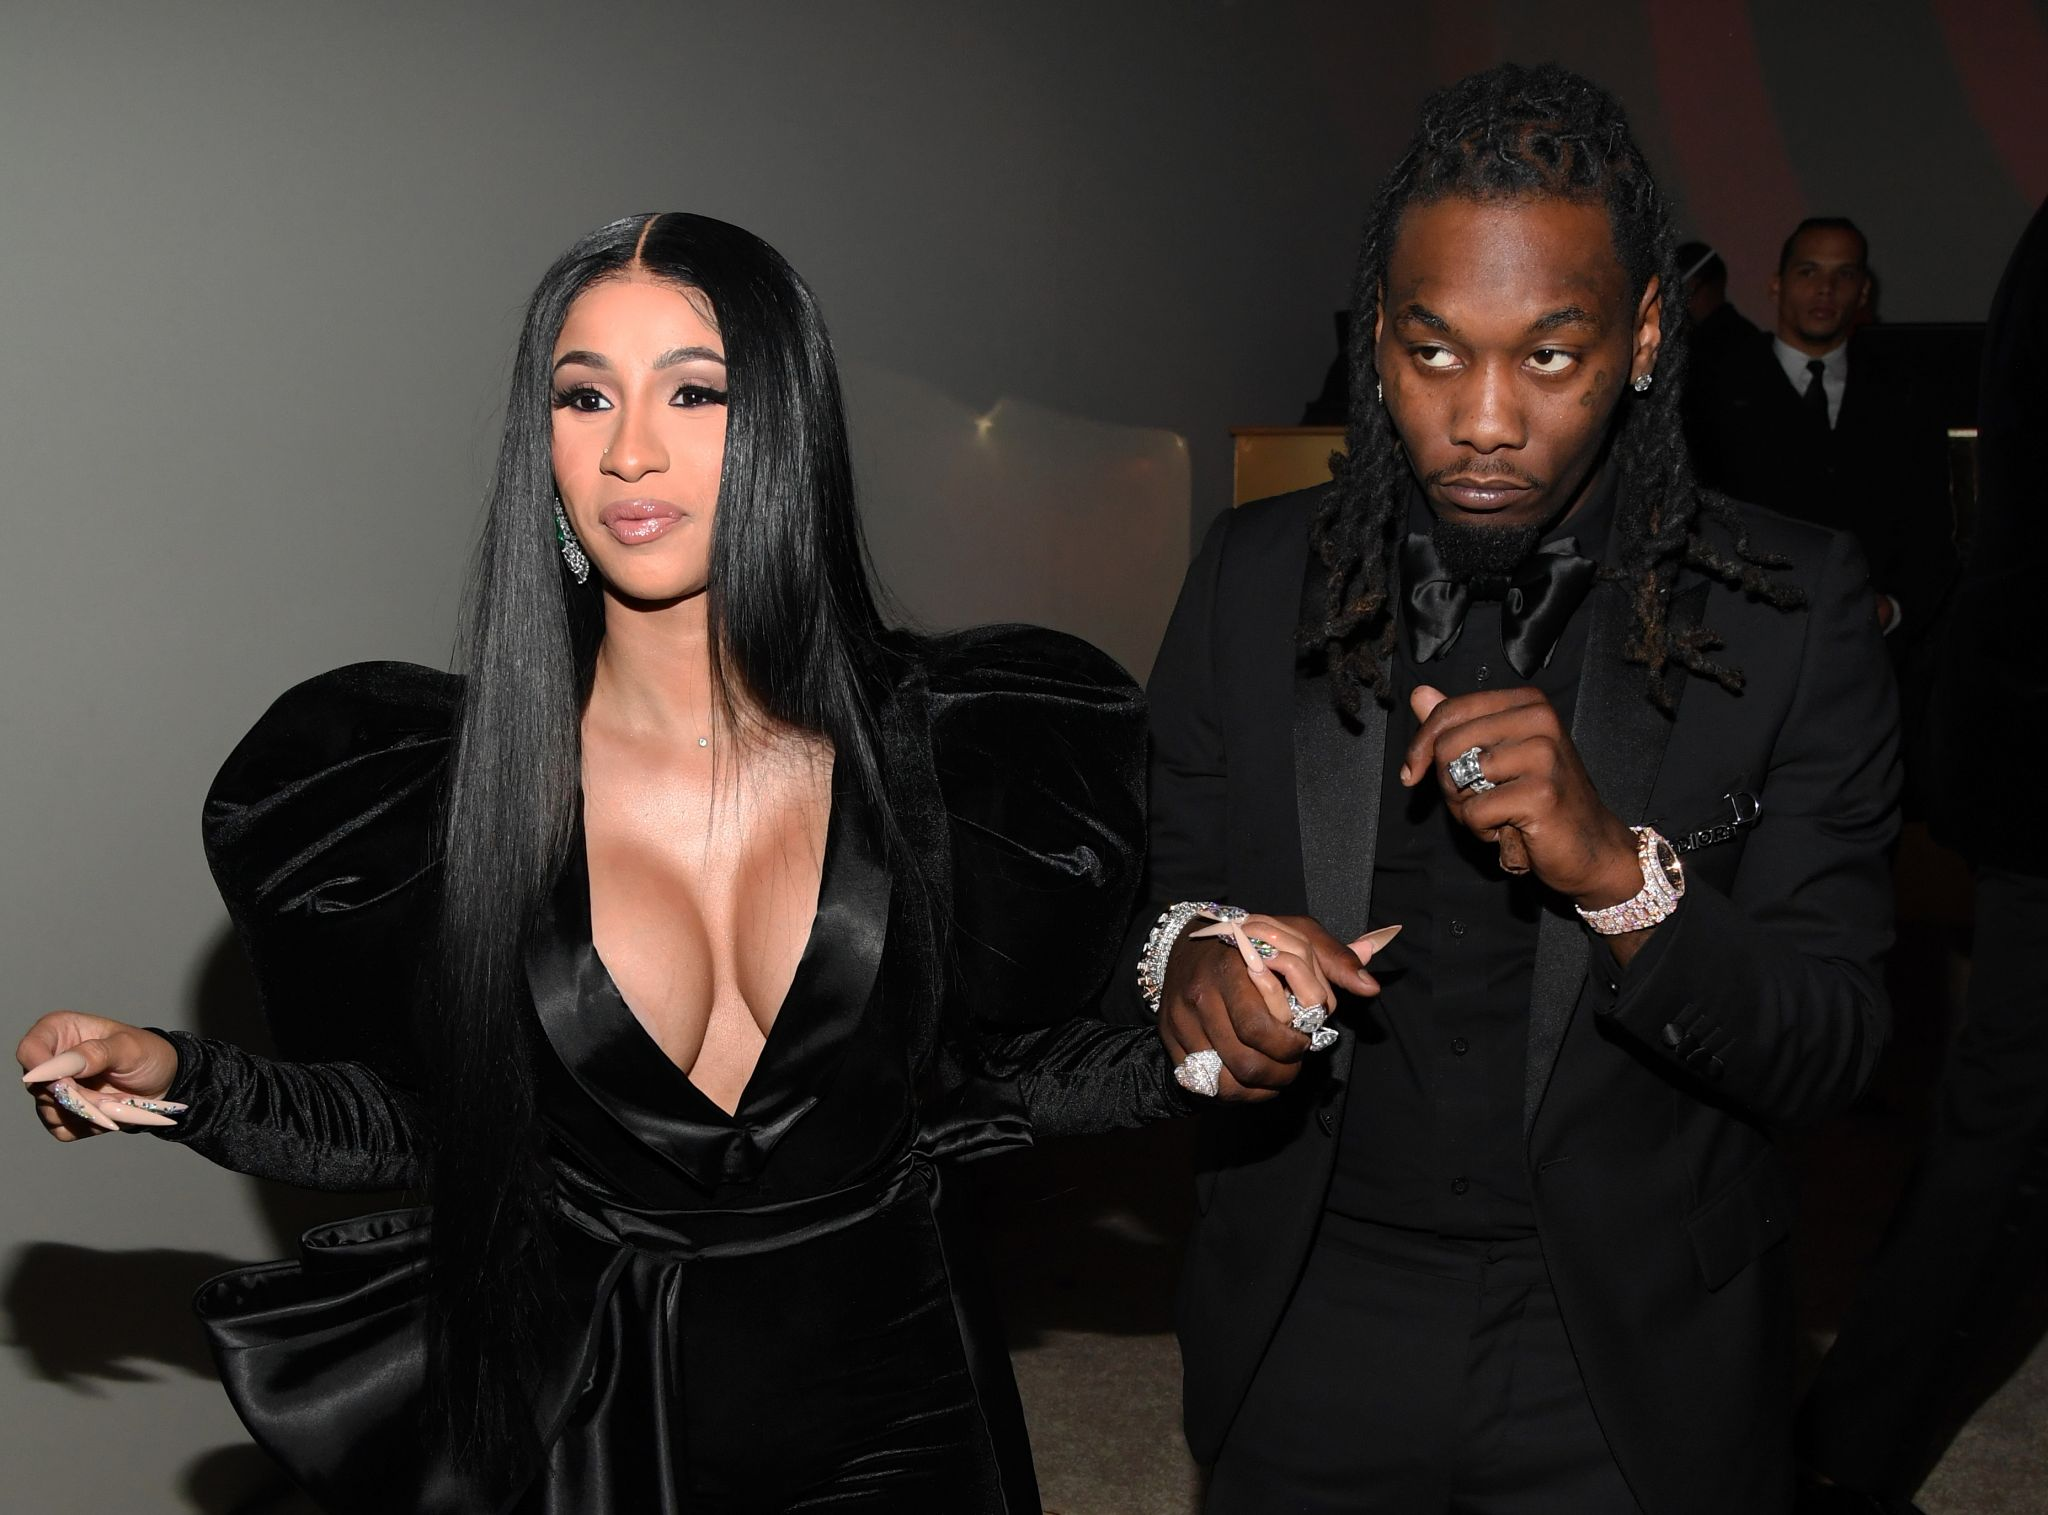 See who showed up for Diddy's lavish, A-list 50th birthday bash in Los Angeles